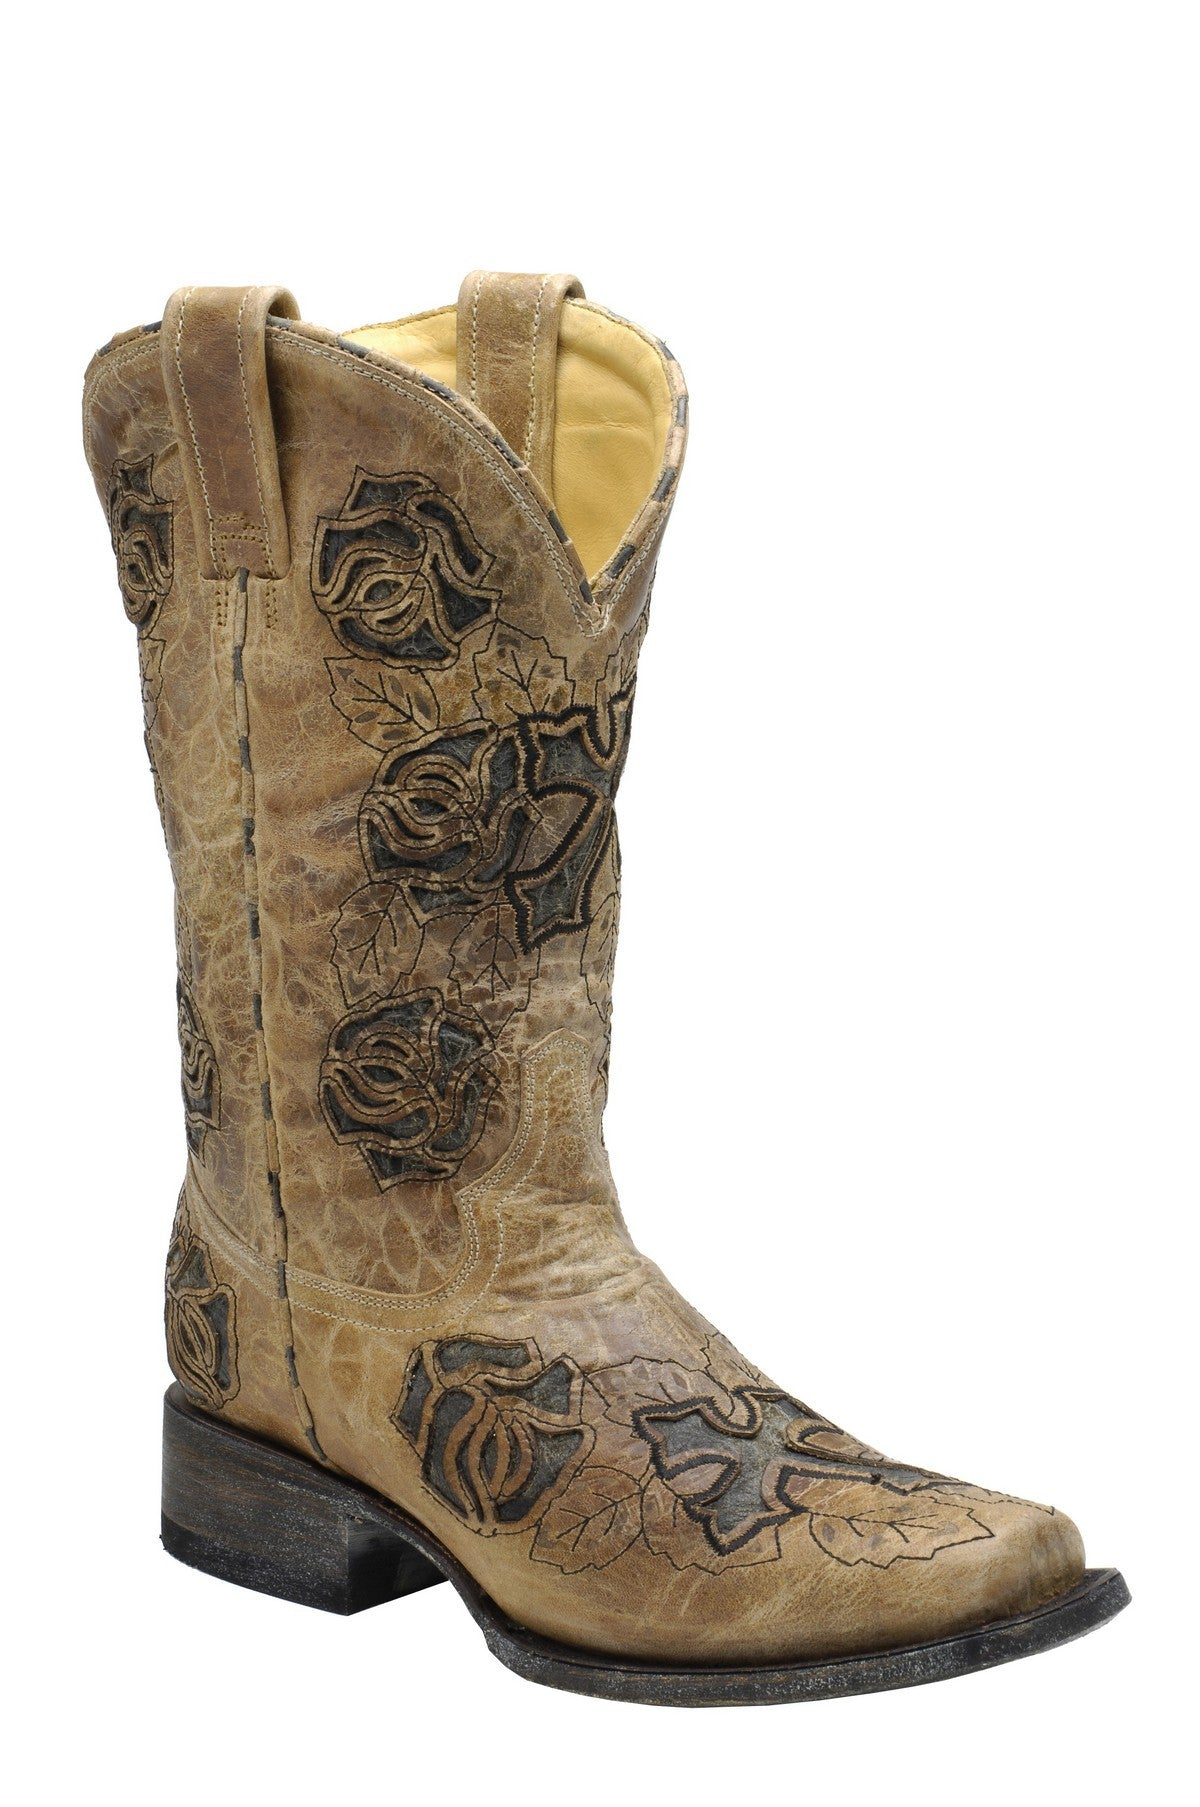 Women's Corral Western Boot #R2375-C